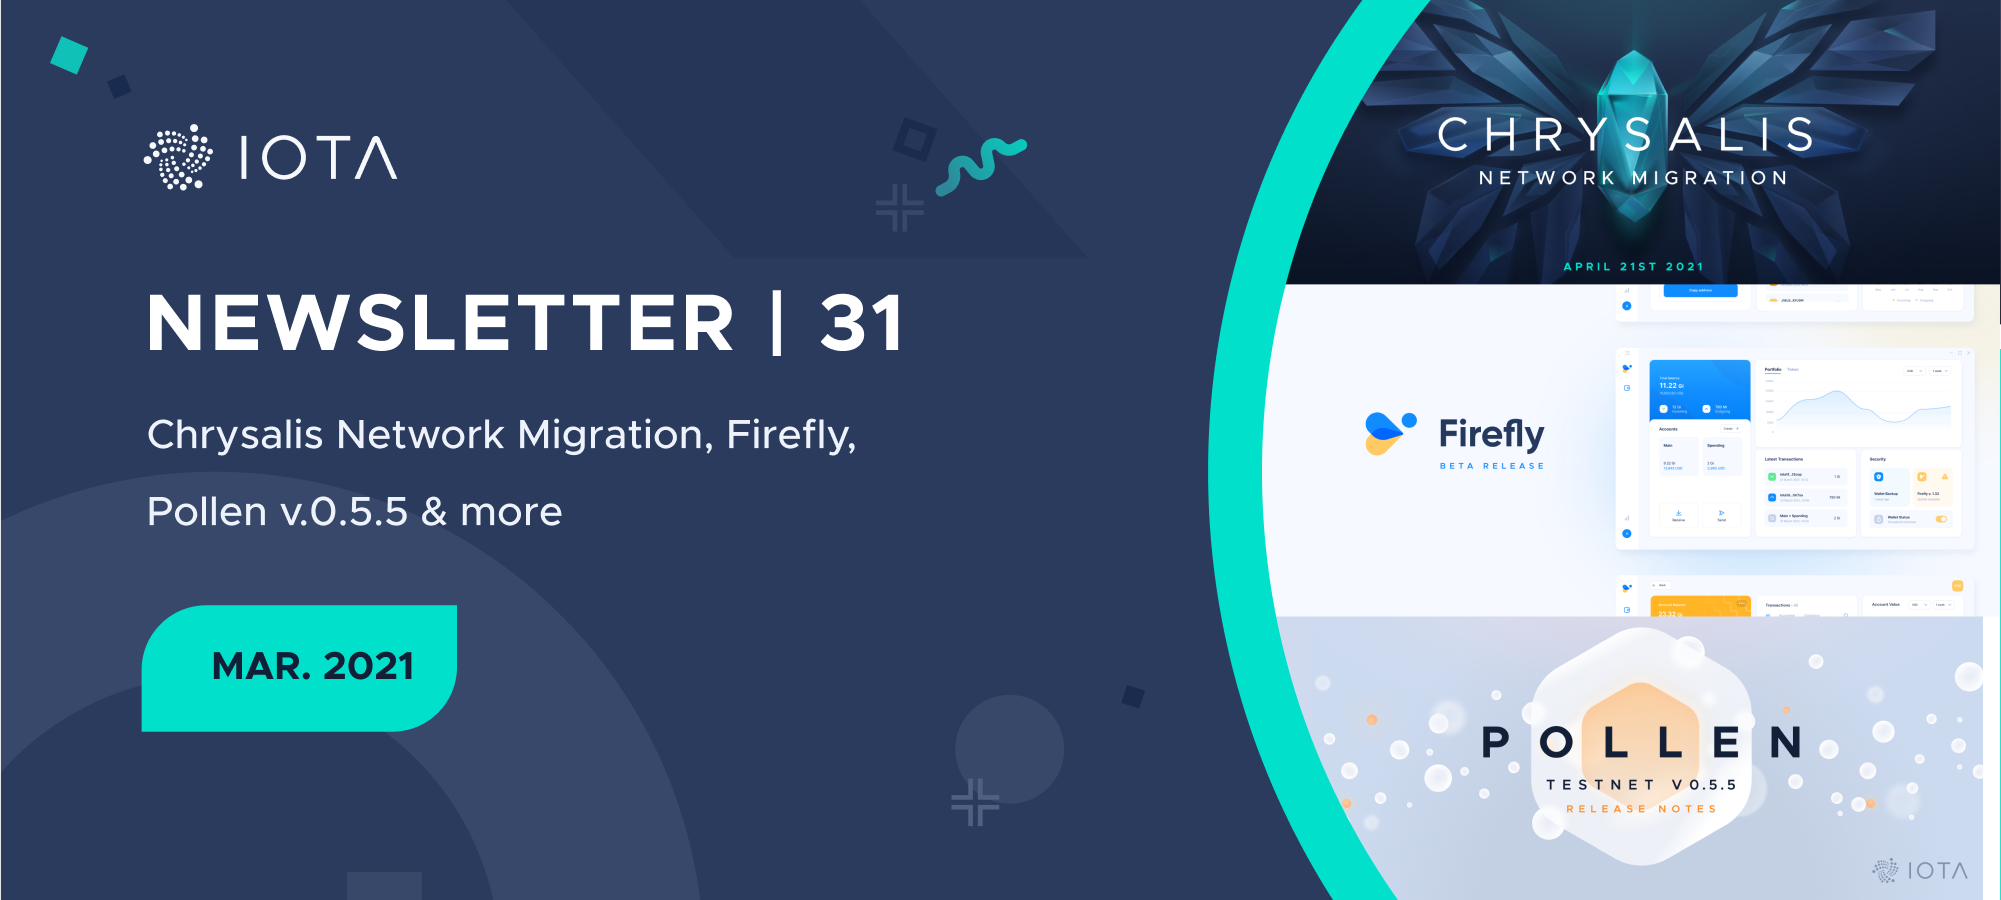 IOTA Newsletter #31 - Chrysalis Network Migration, Firefly, Pollen v0.5.5 & more.